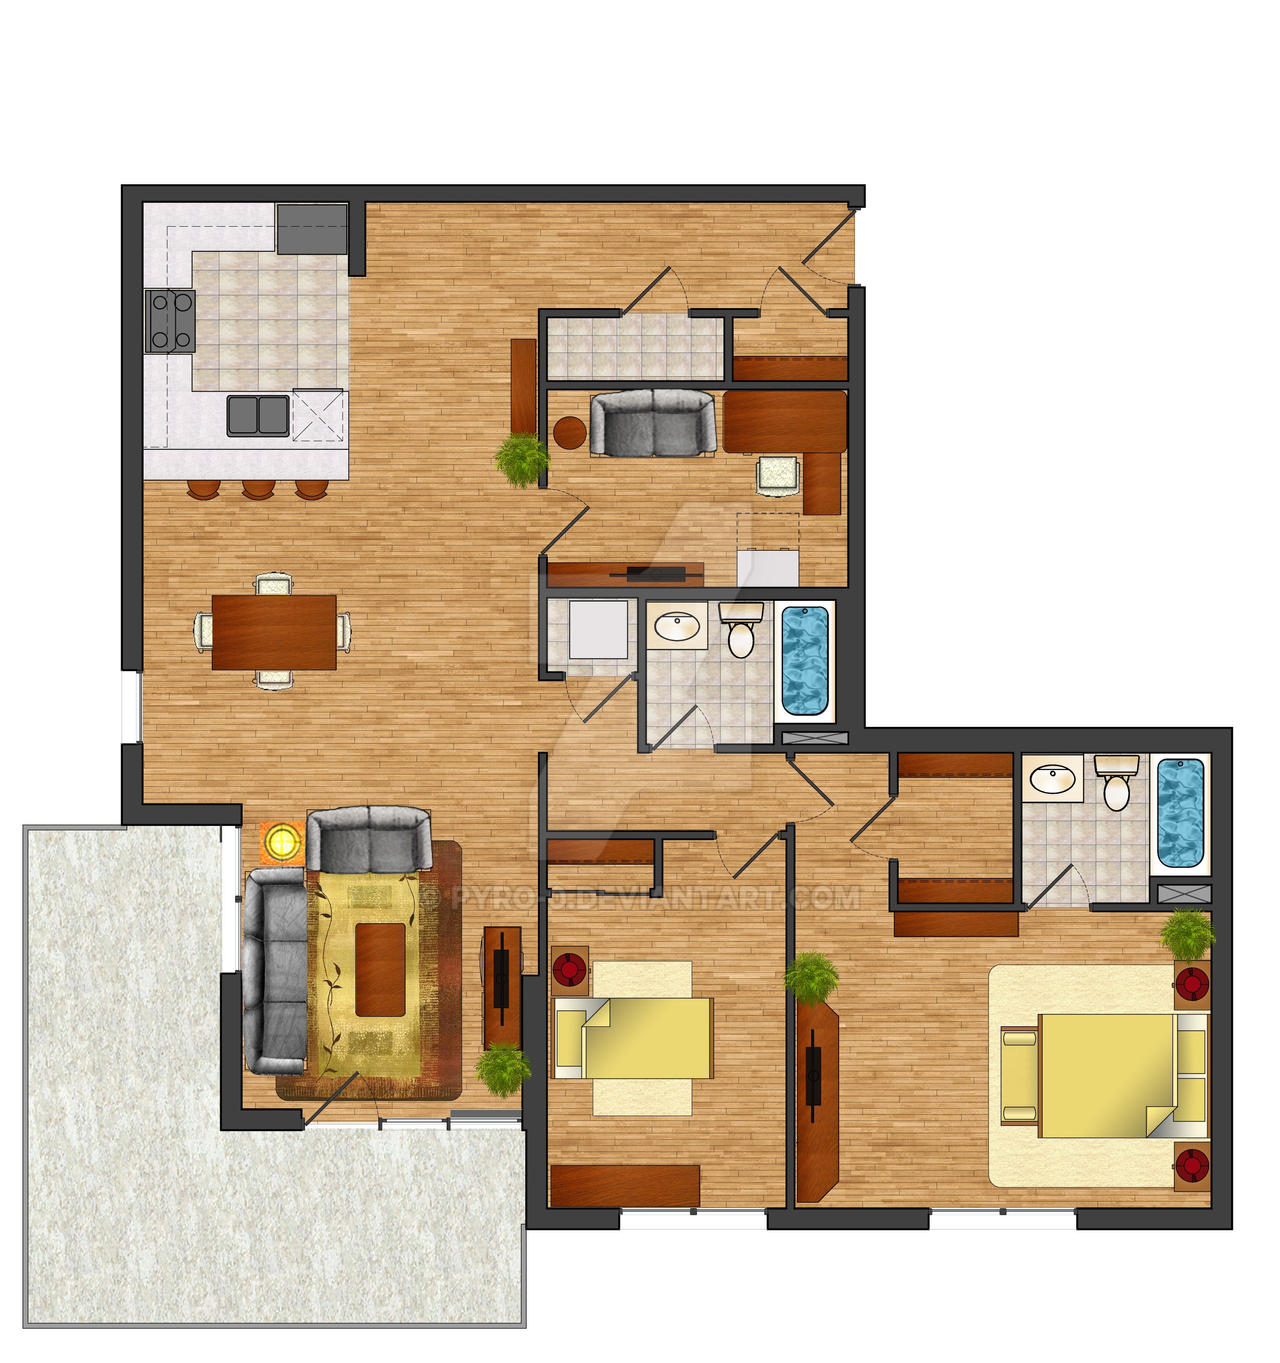 condominium plans and designs modern home design and small duplex condo floor plans ahomeplan com